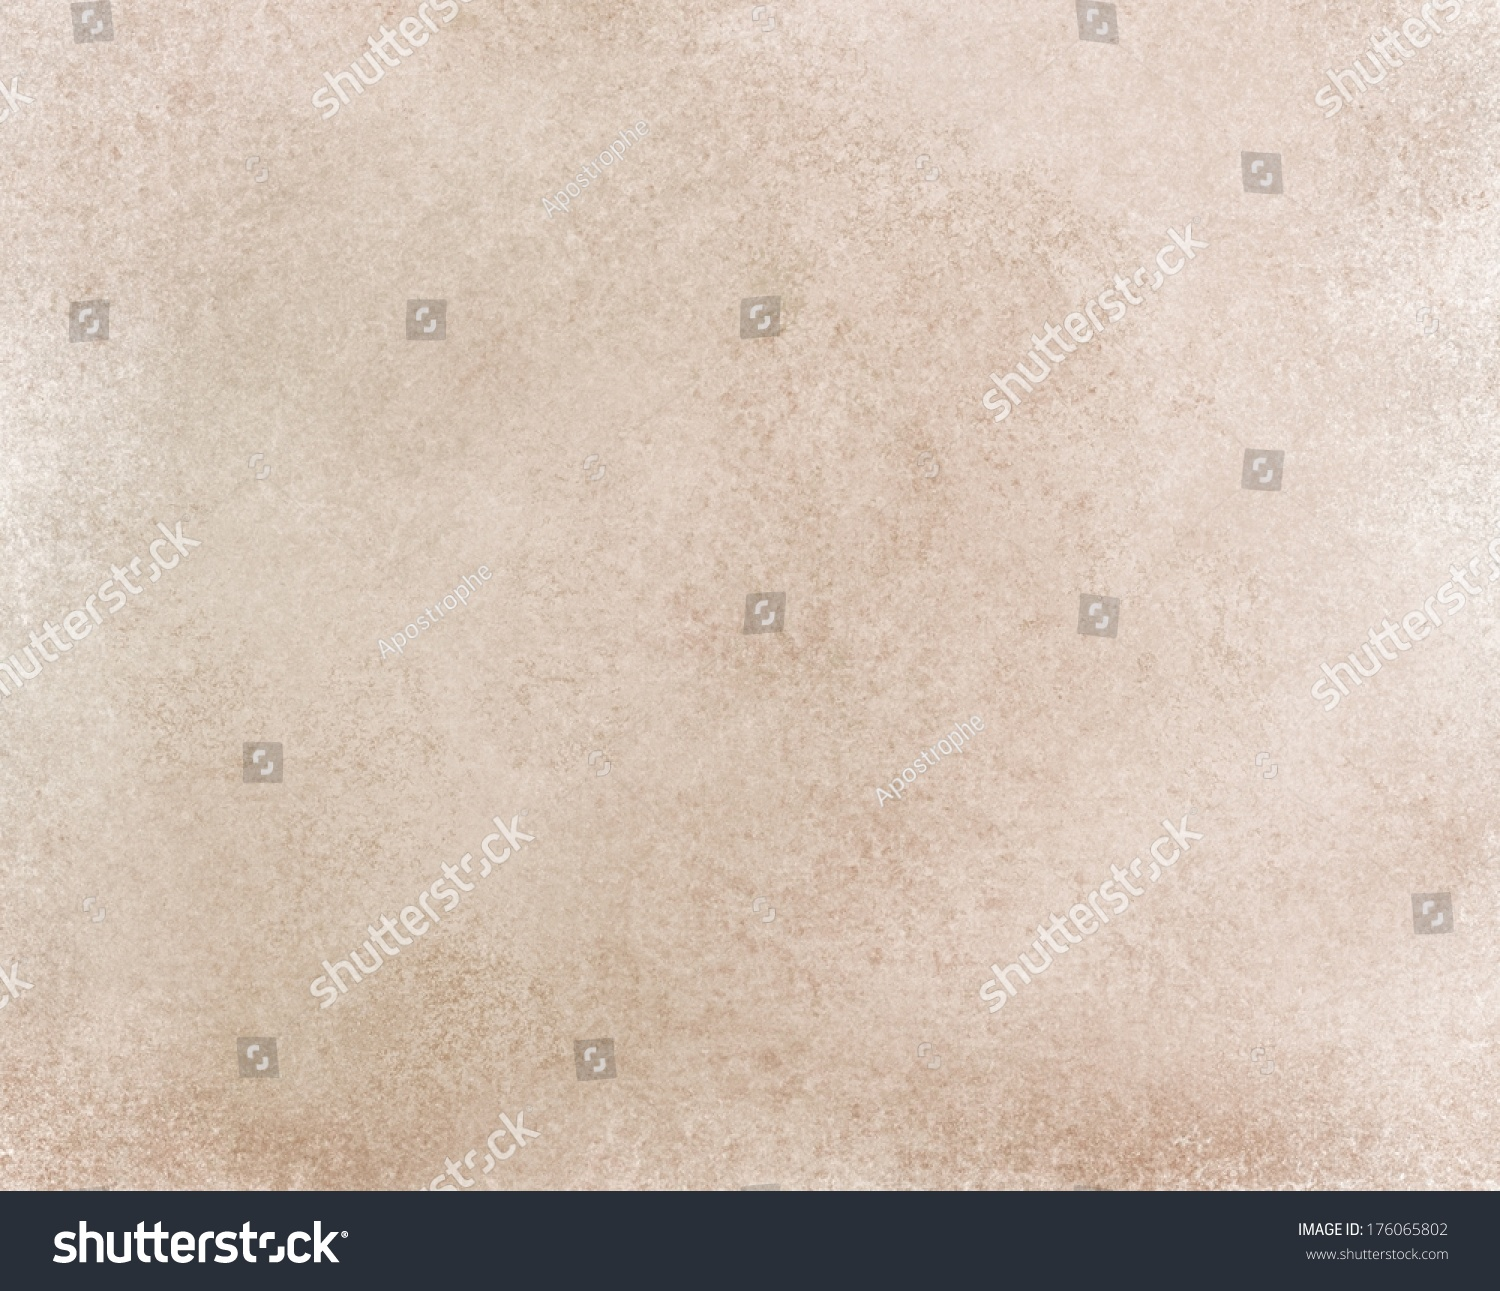 White Stain Light Brown: Light Brown Background White Color Tones, Blotchy Old Wall